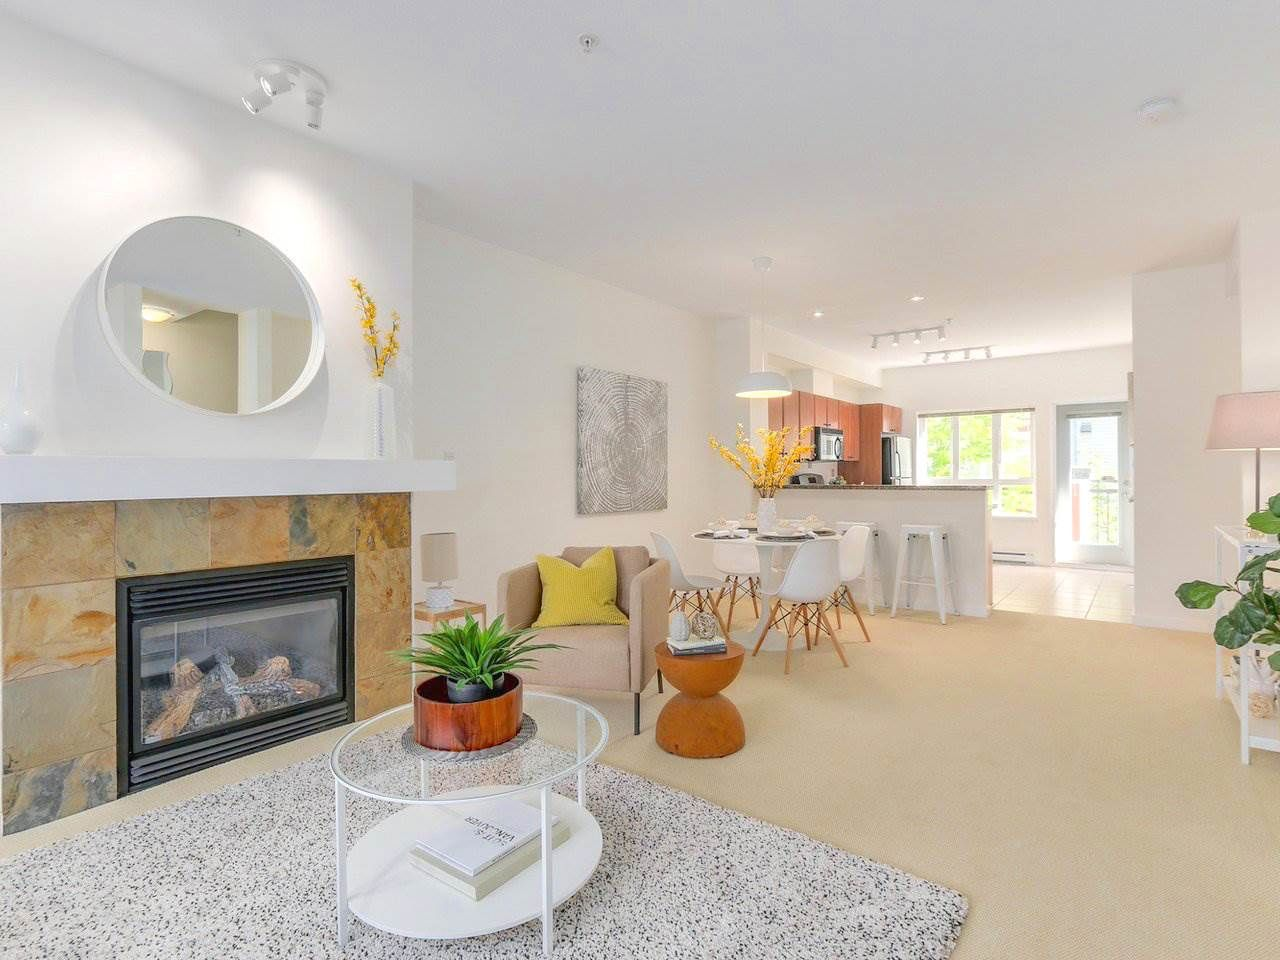 """Main Photo: 3206 E 54TH Avenue in Vancouver: Champlain Heights Townhouse for sale in """"CHAMPLAIN VILLAGE"""" (Vancouver East)  : MLS®# R2287459"""